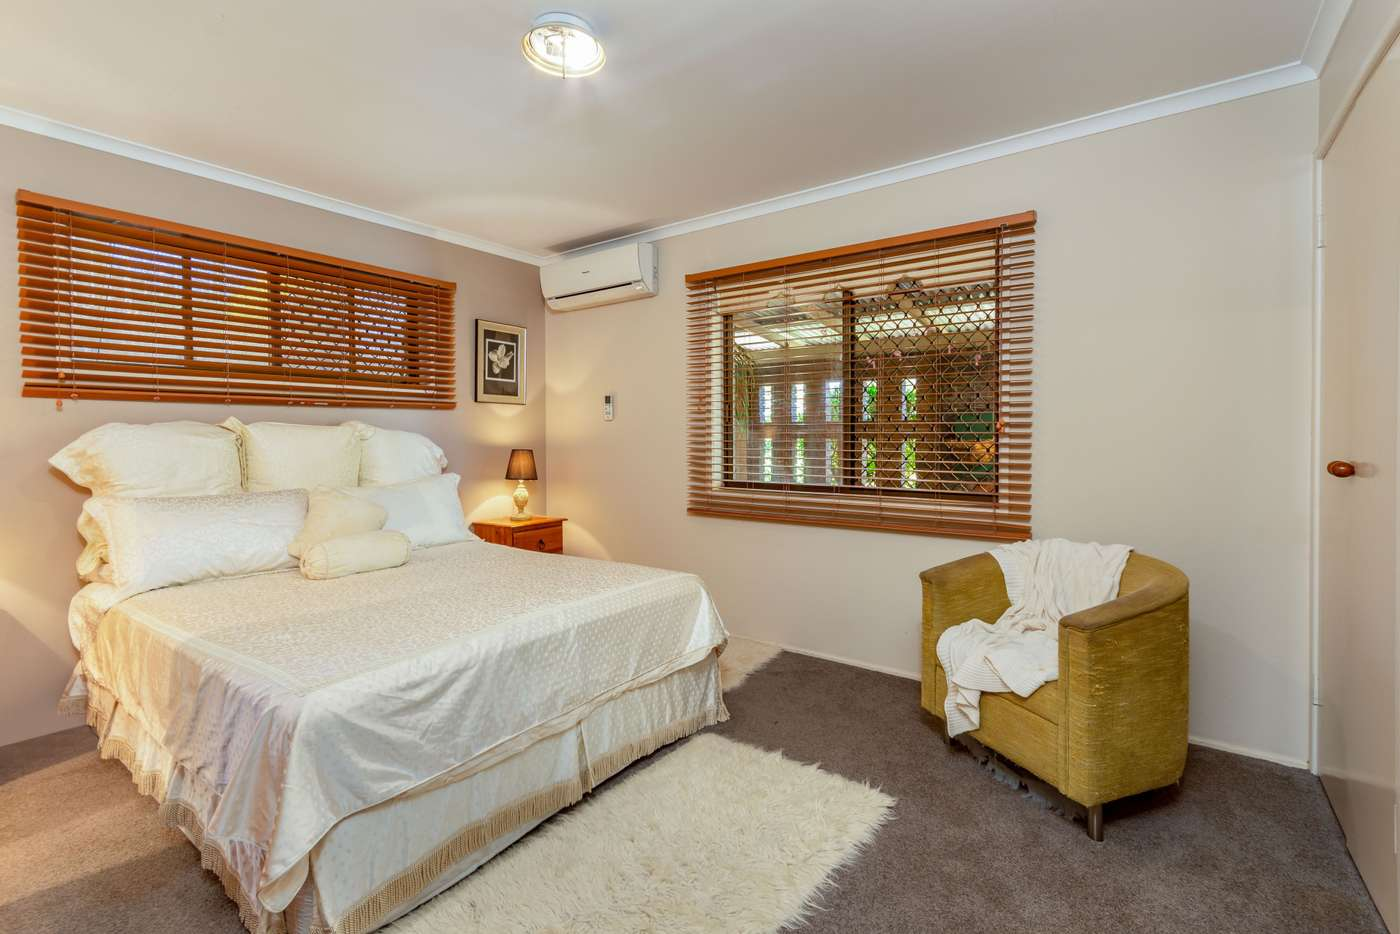 Seventh view of Homely house listing, 17 Kittyhawk Street, Bongaree QLD 4507